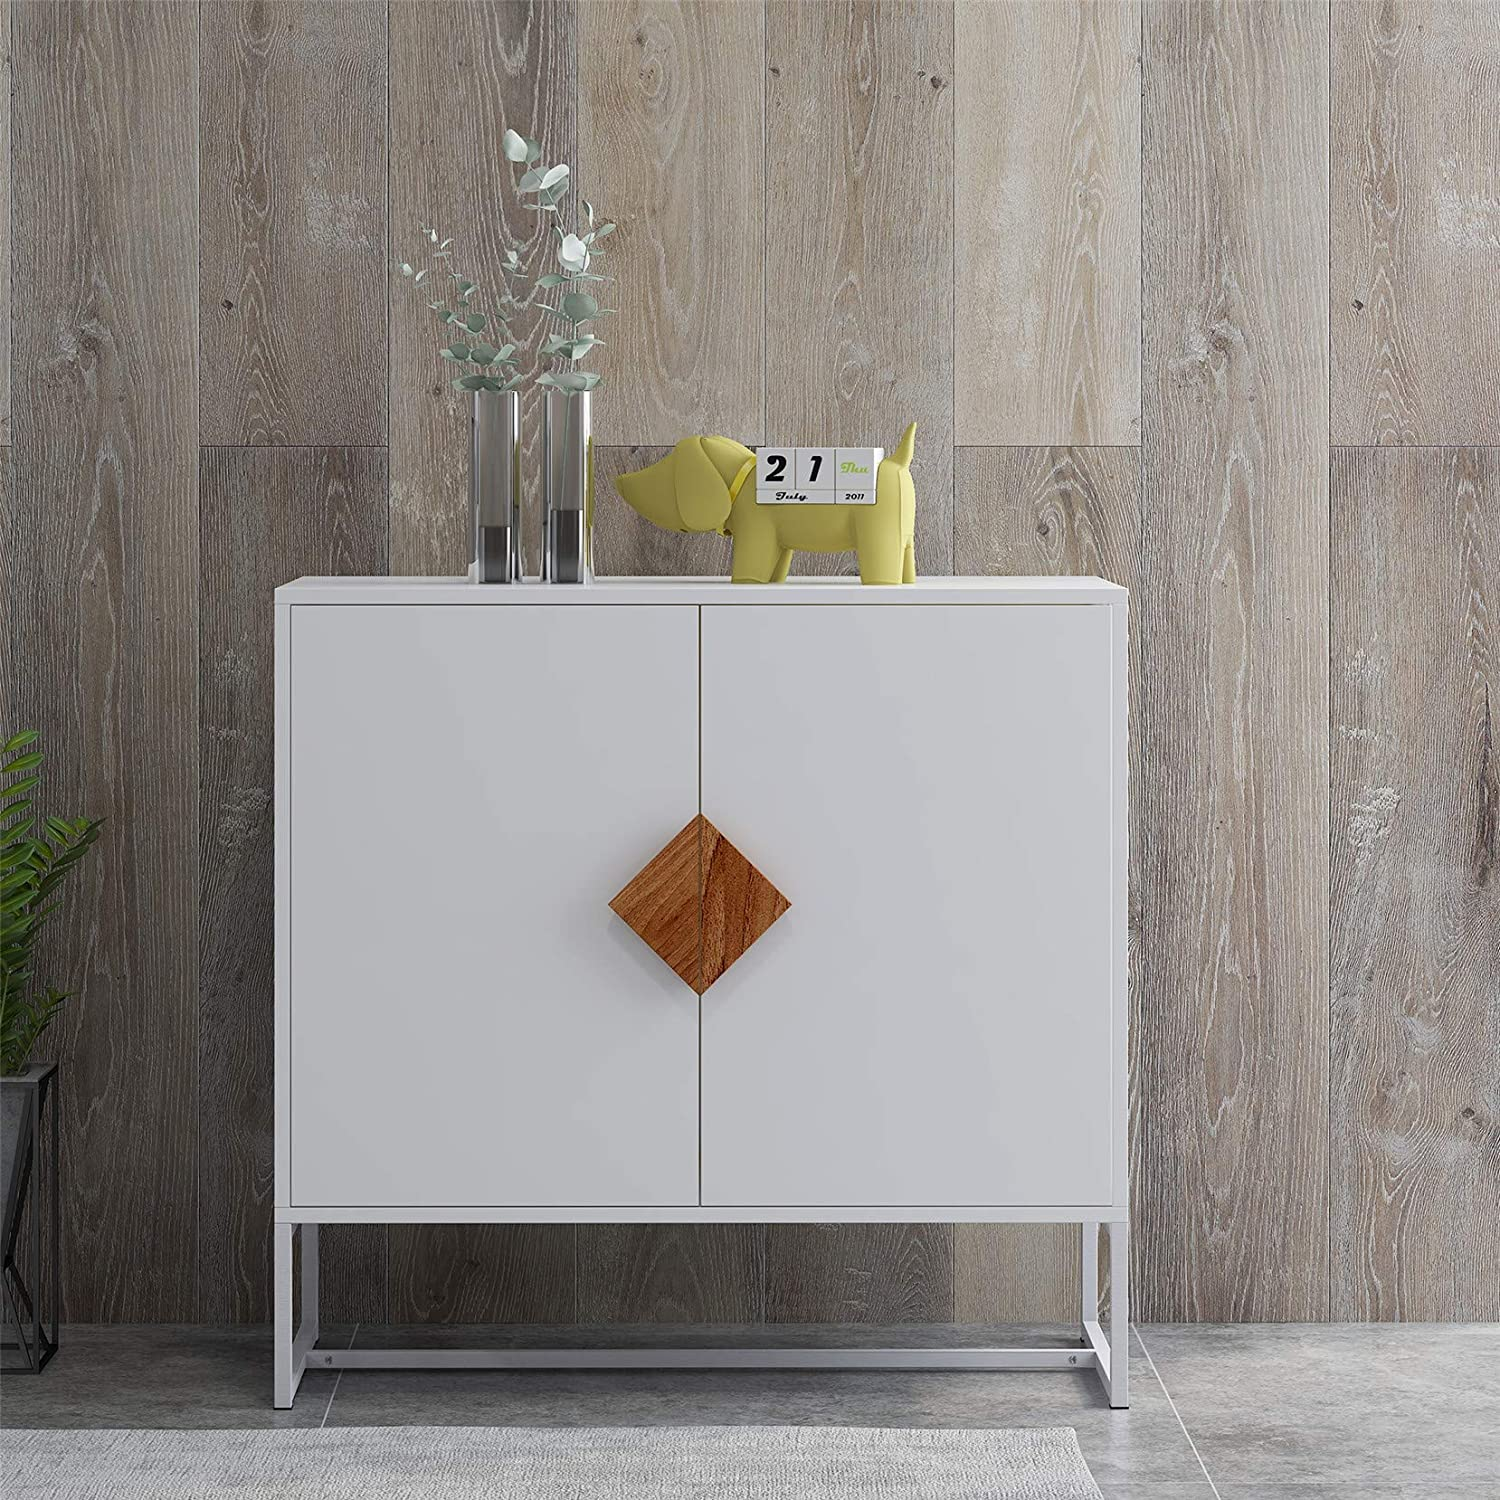 HomVent Storage Cabinet 2 Doors Side Manufacturer OFFicial shop Table with Squa Special price Wood Solid